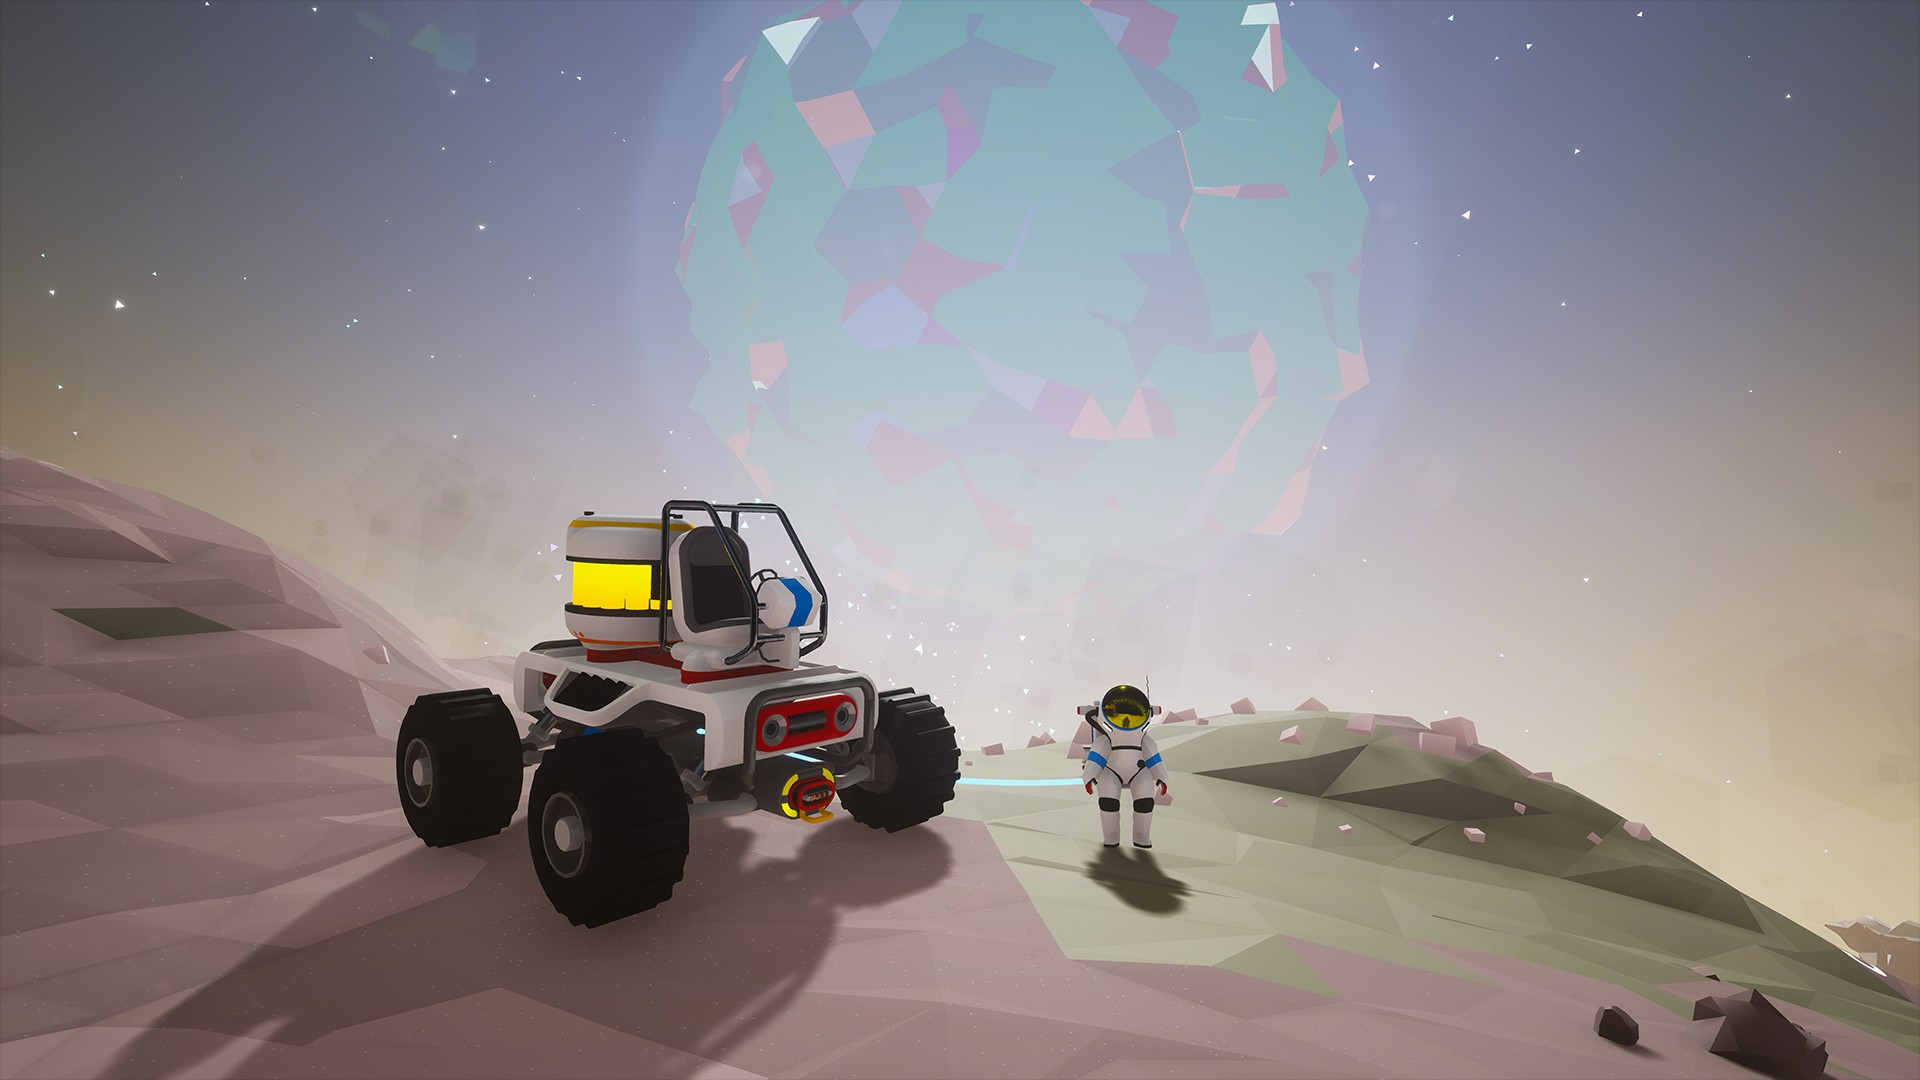 Astroneer to Officially Launch on February 6, 2019 - Total